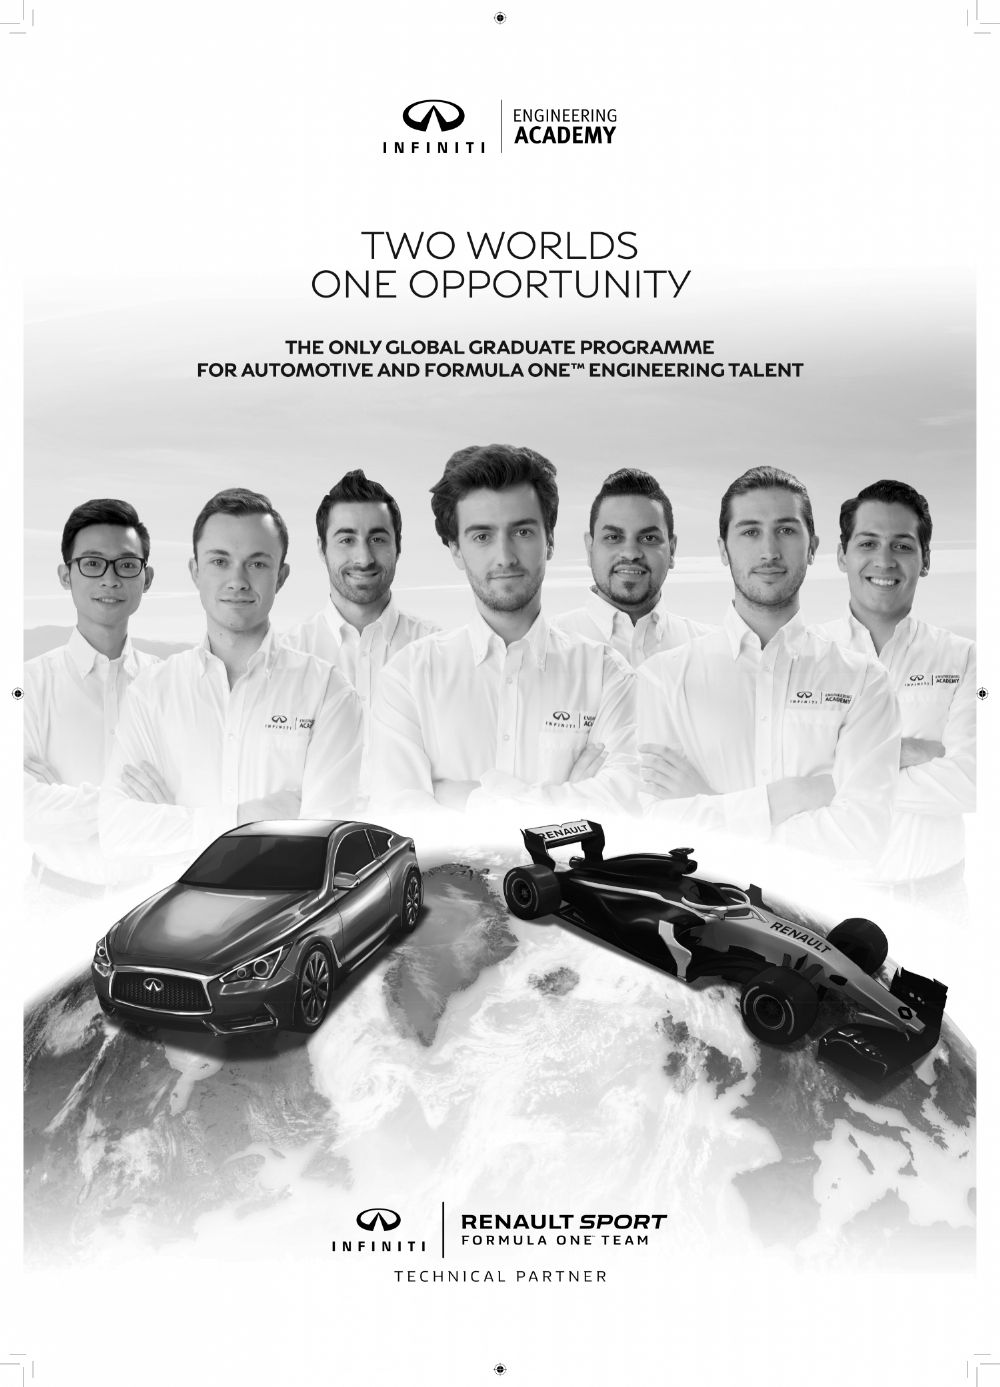 INFINITI ENGINEERING ACADEMY TO CONDUCT GROUND-BREAKING RESEARCH INTO DECISION MAKING